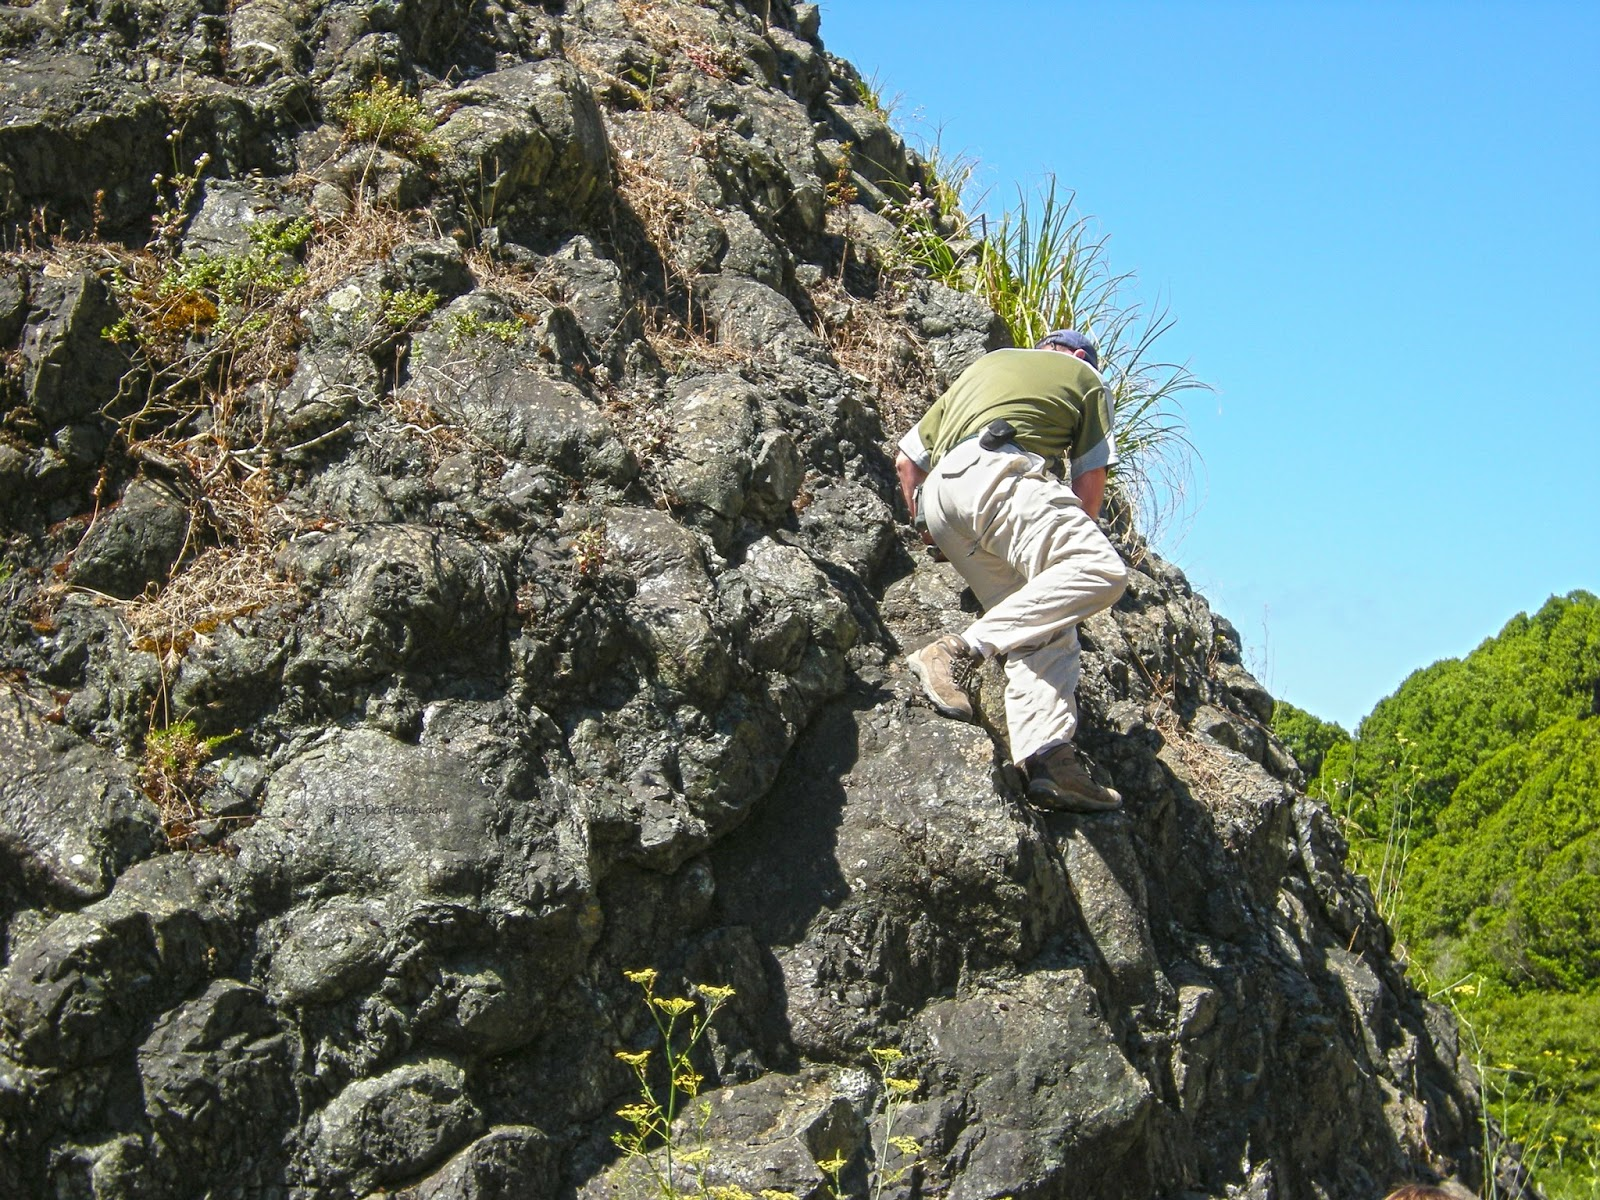 pillow lava in accreted island in melange